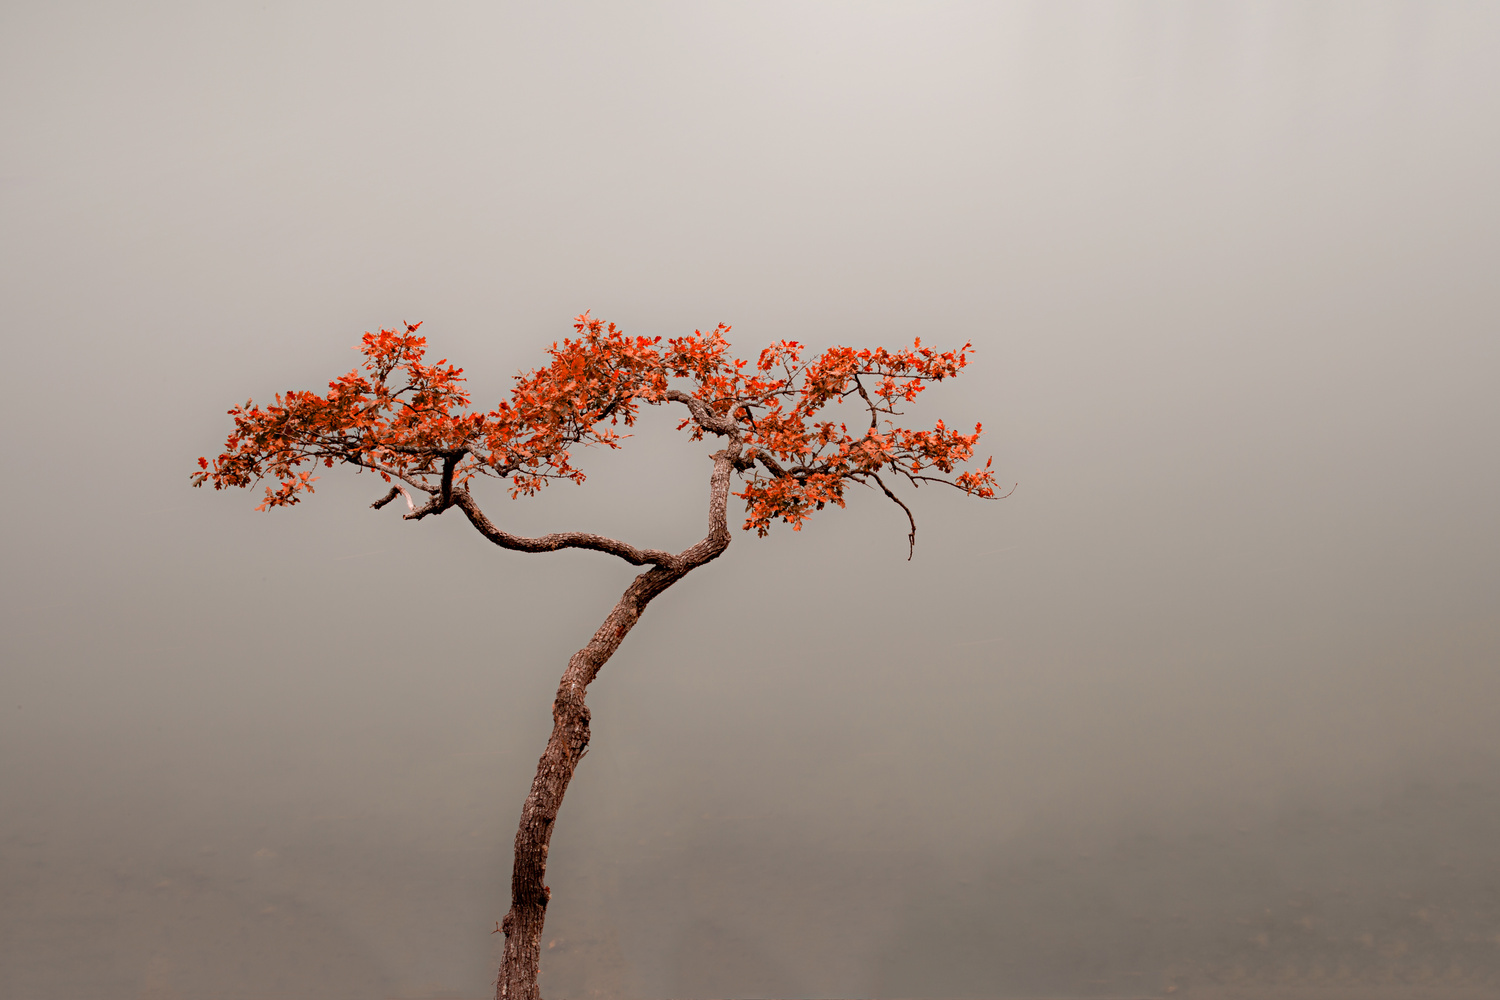 Lone Tree by Tim Pumphrey